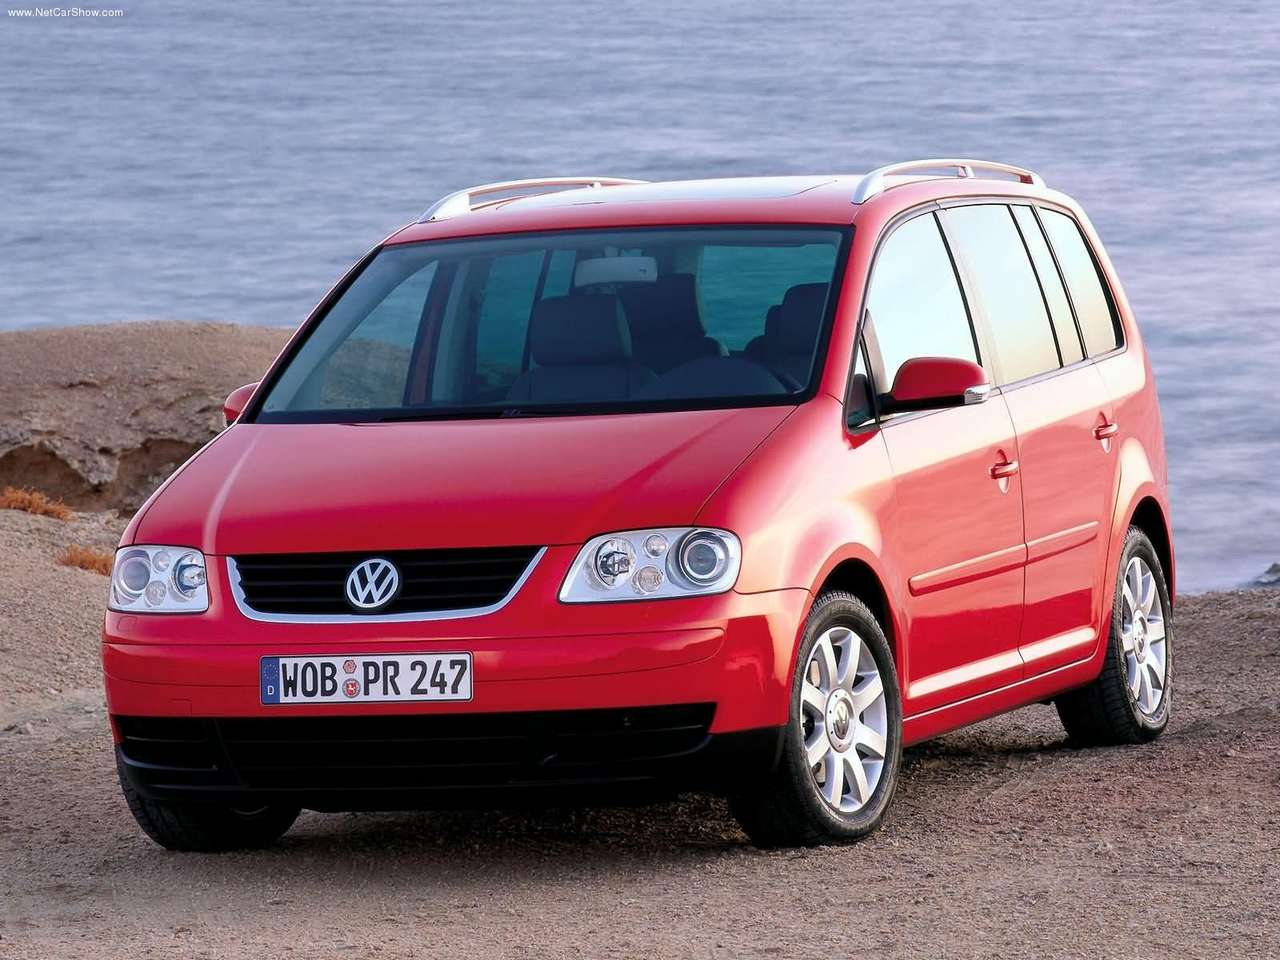 volkswagen touran specs 2003 2004 2005 2006 autoevolution. Black Bedroom Furniture Sets. Home Design Ideas